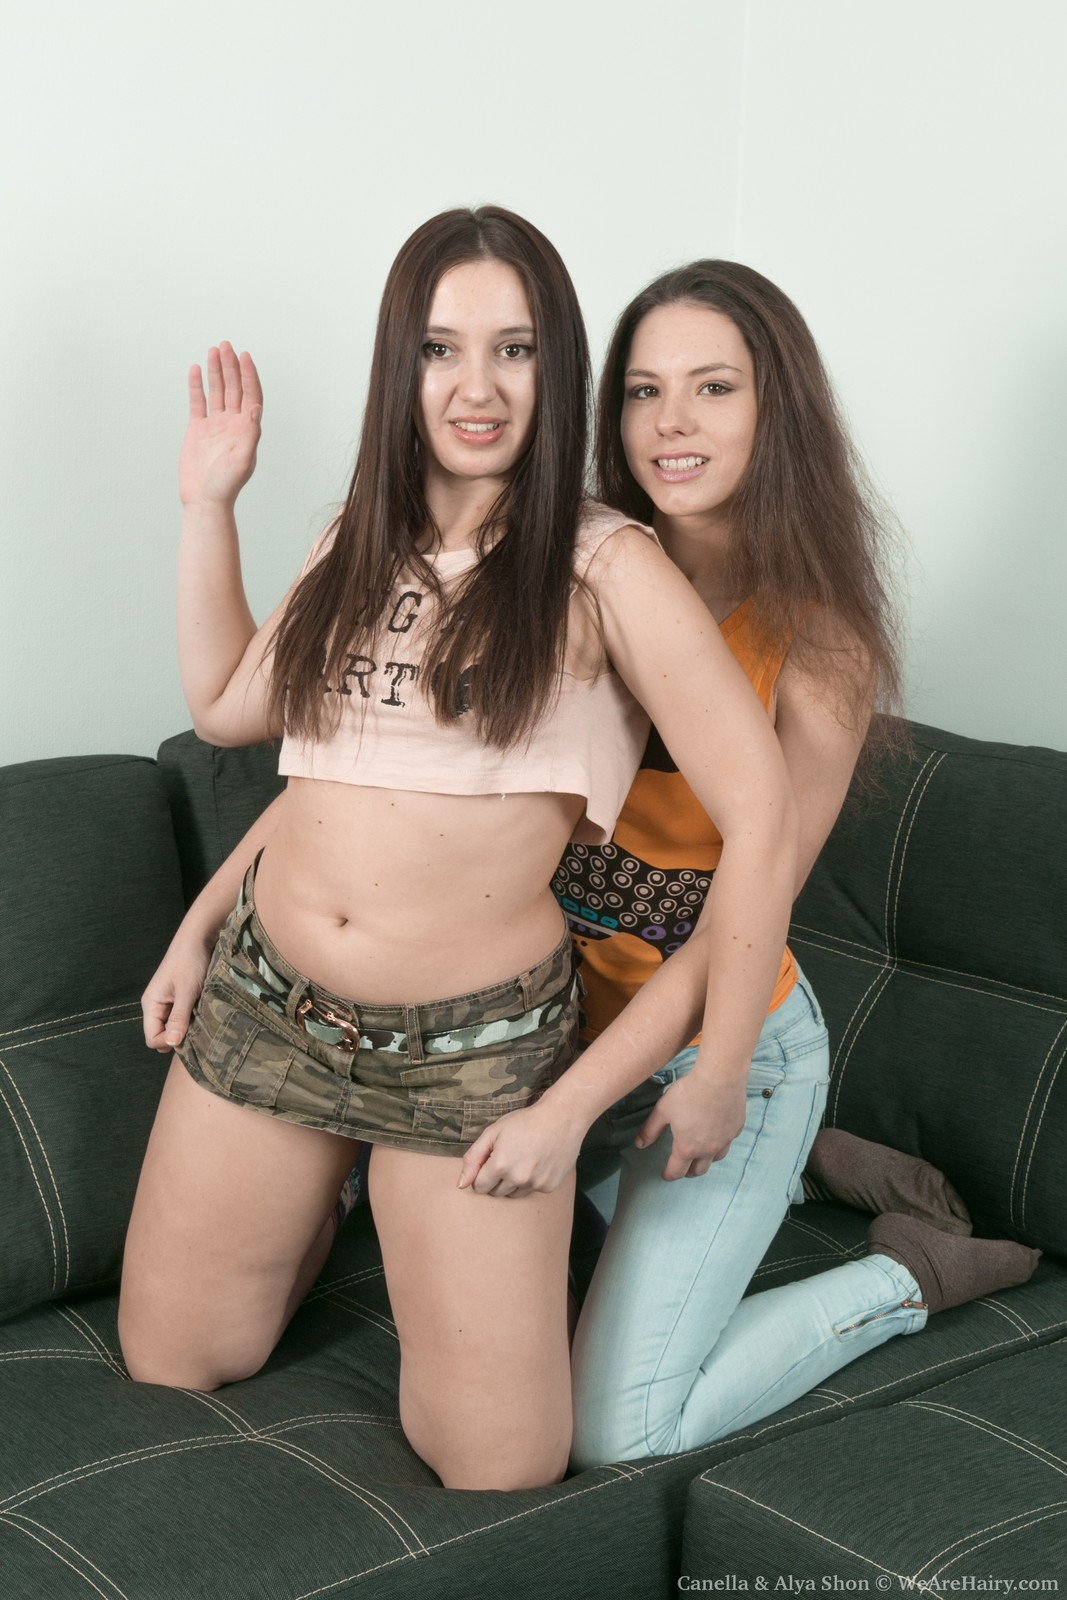 wpid-canella-and-alya-shon-have-lesbian-glass-dildo-fun2.jpg